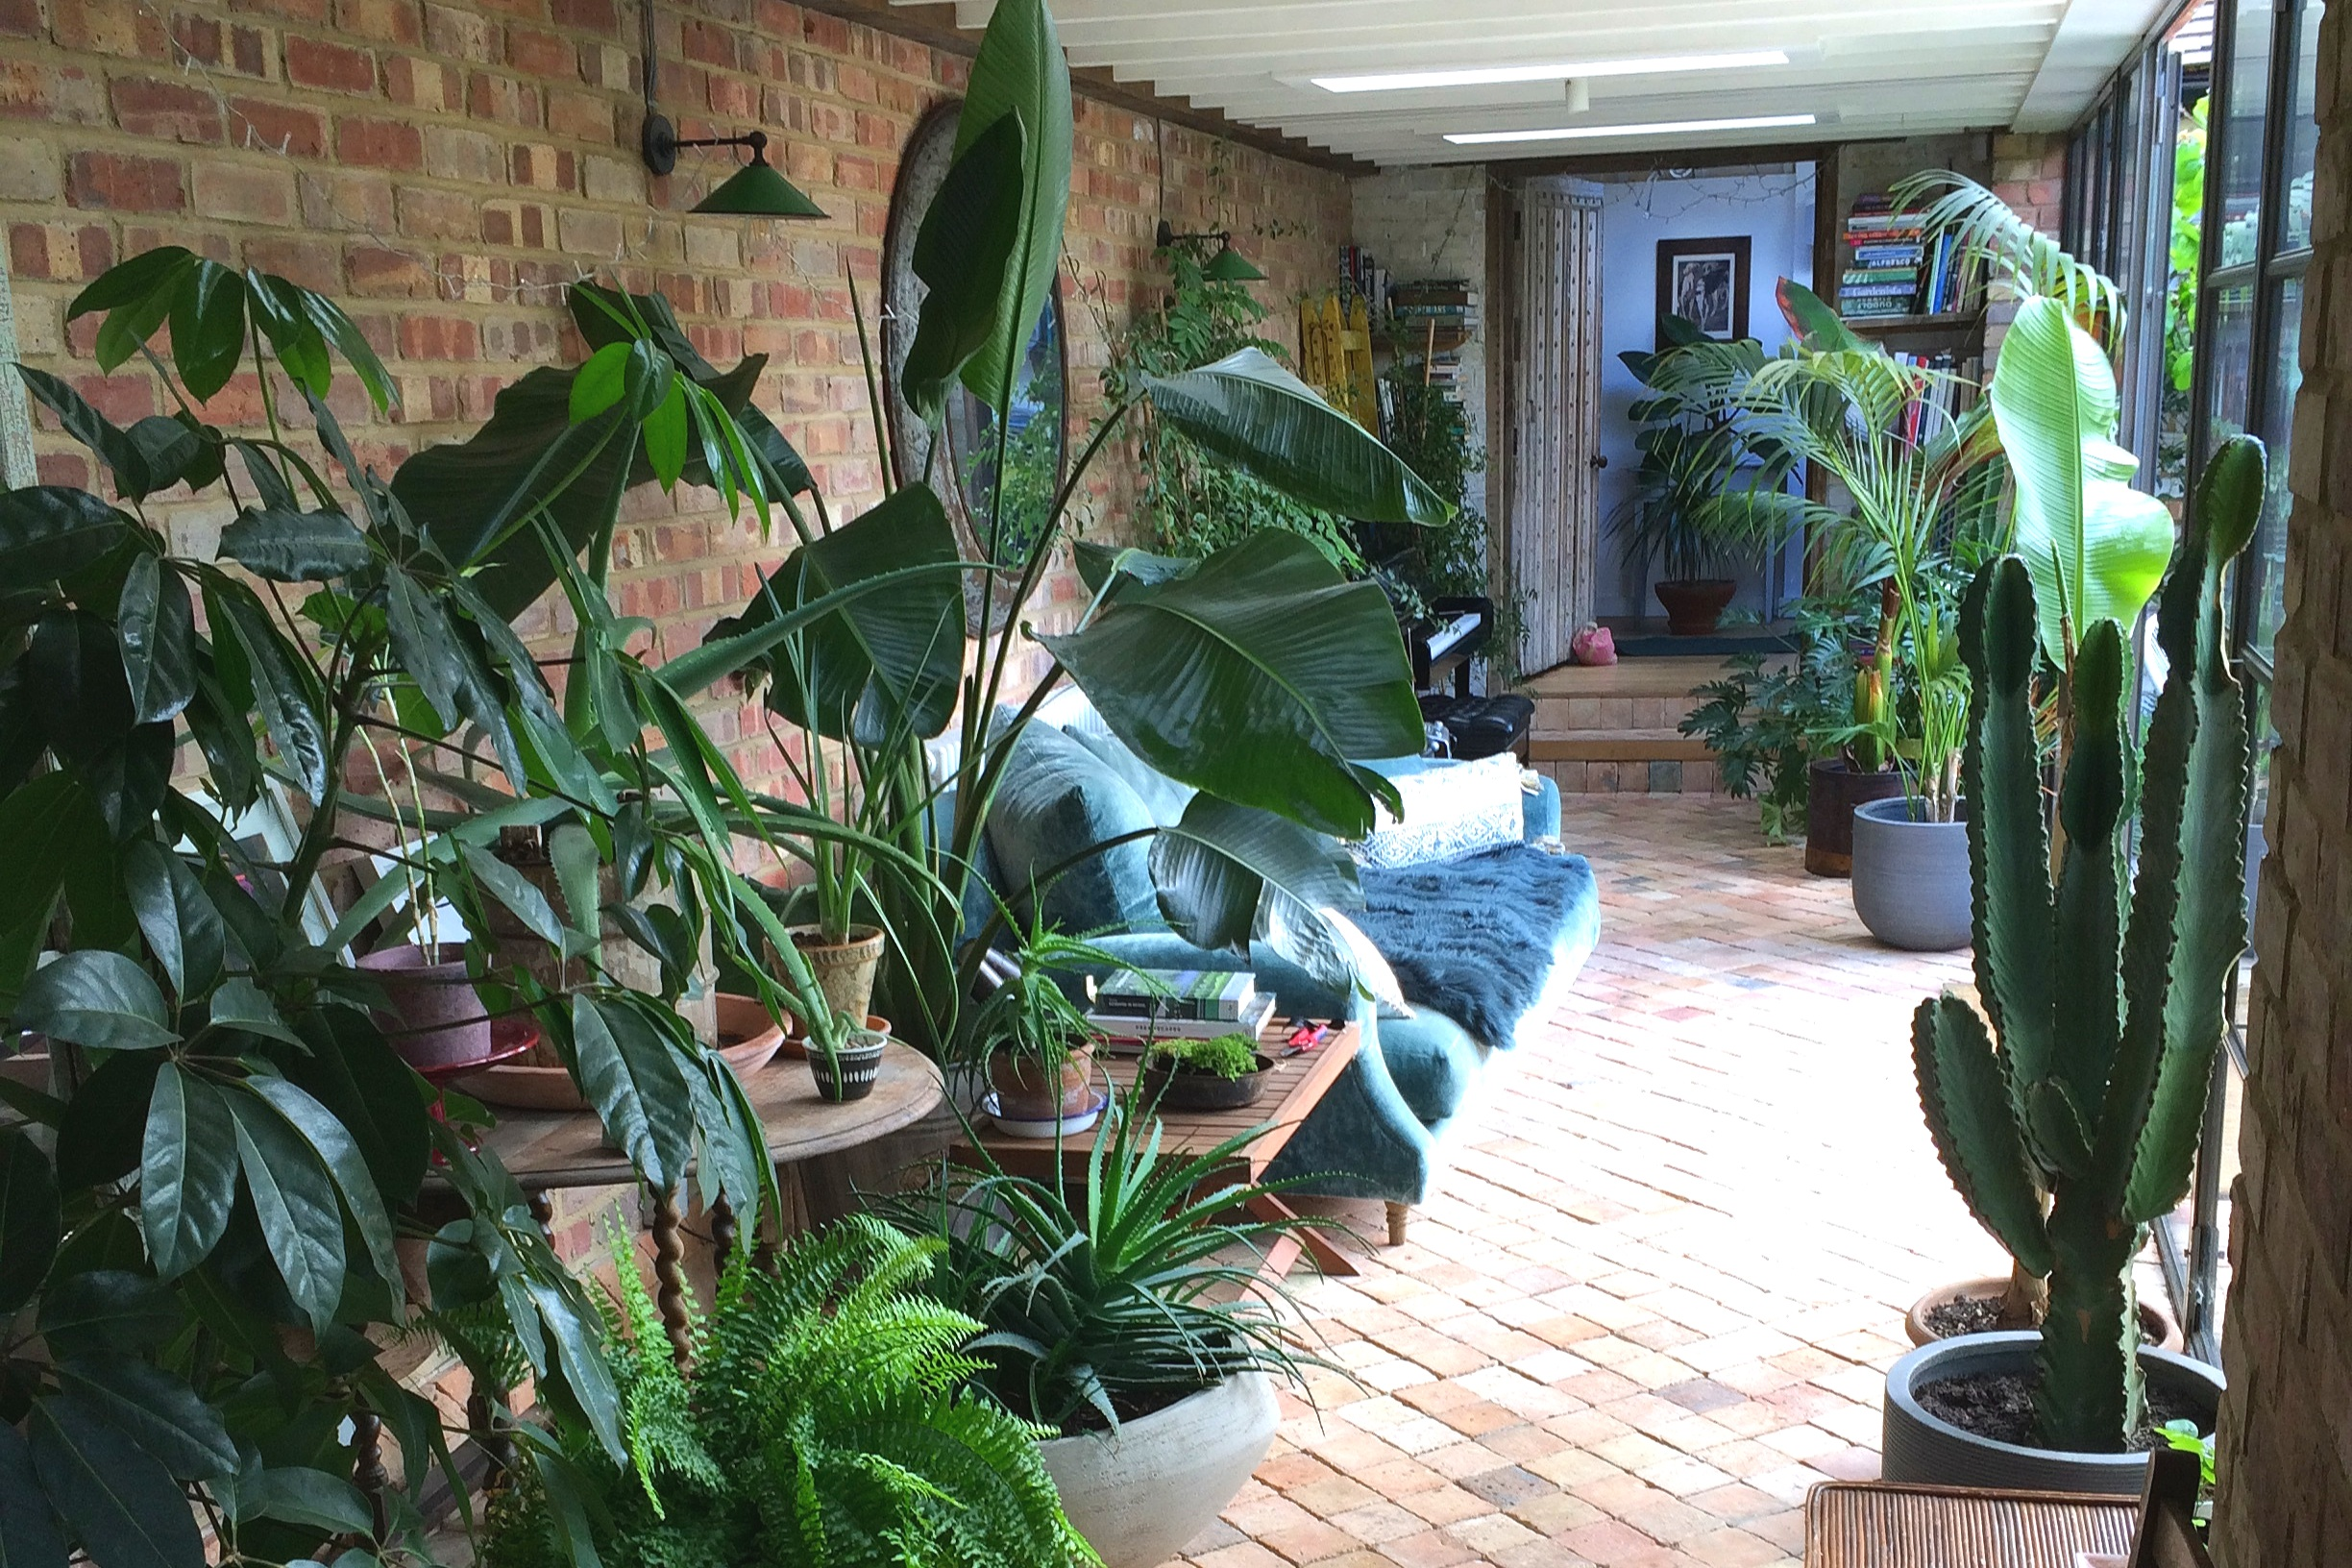 Martha Krempel's plant filled extension. Photograph: Jane Perrone